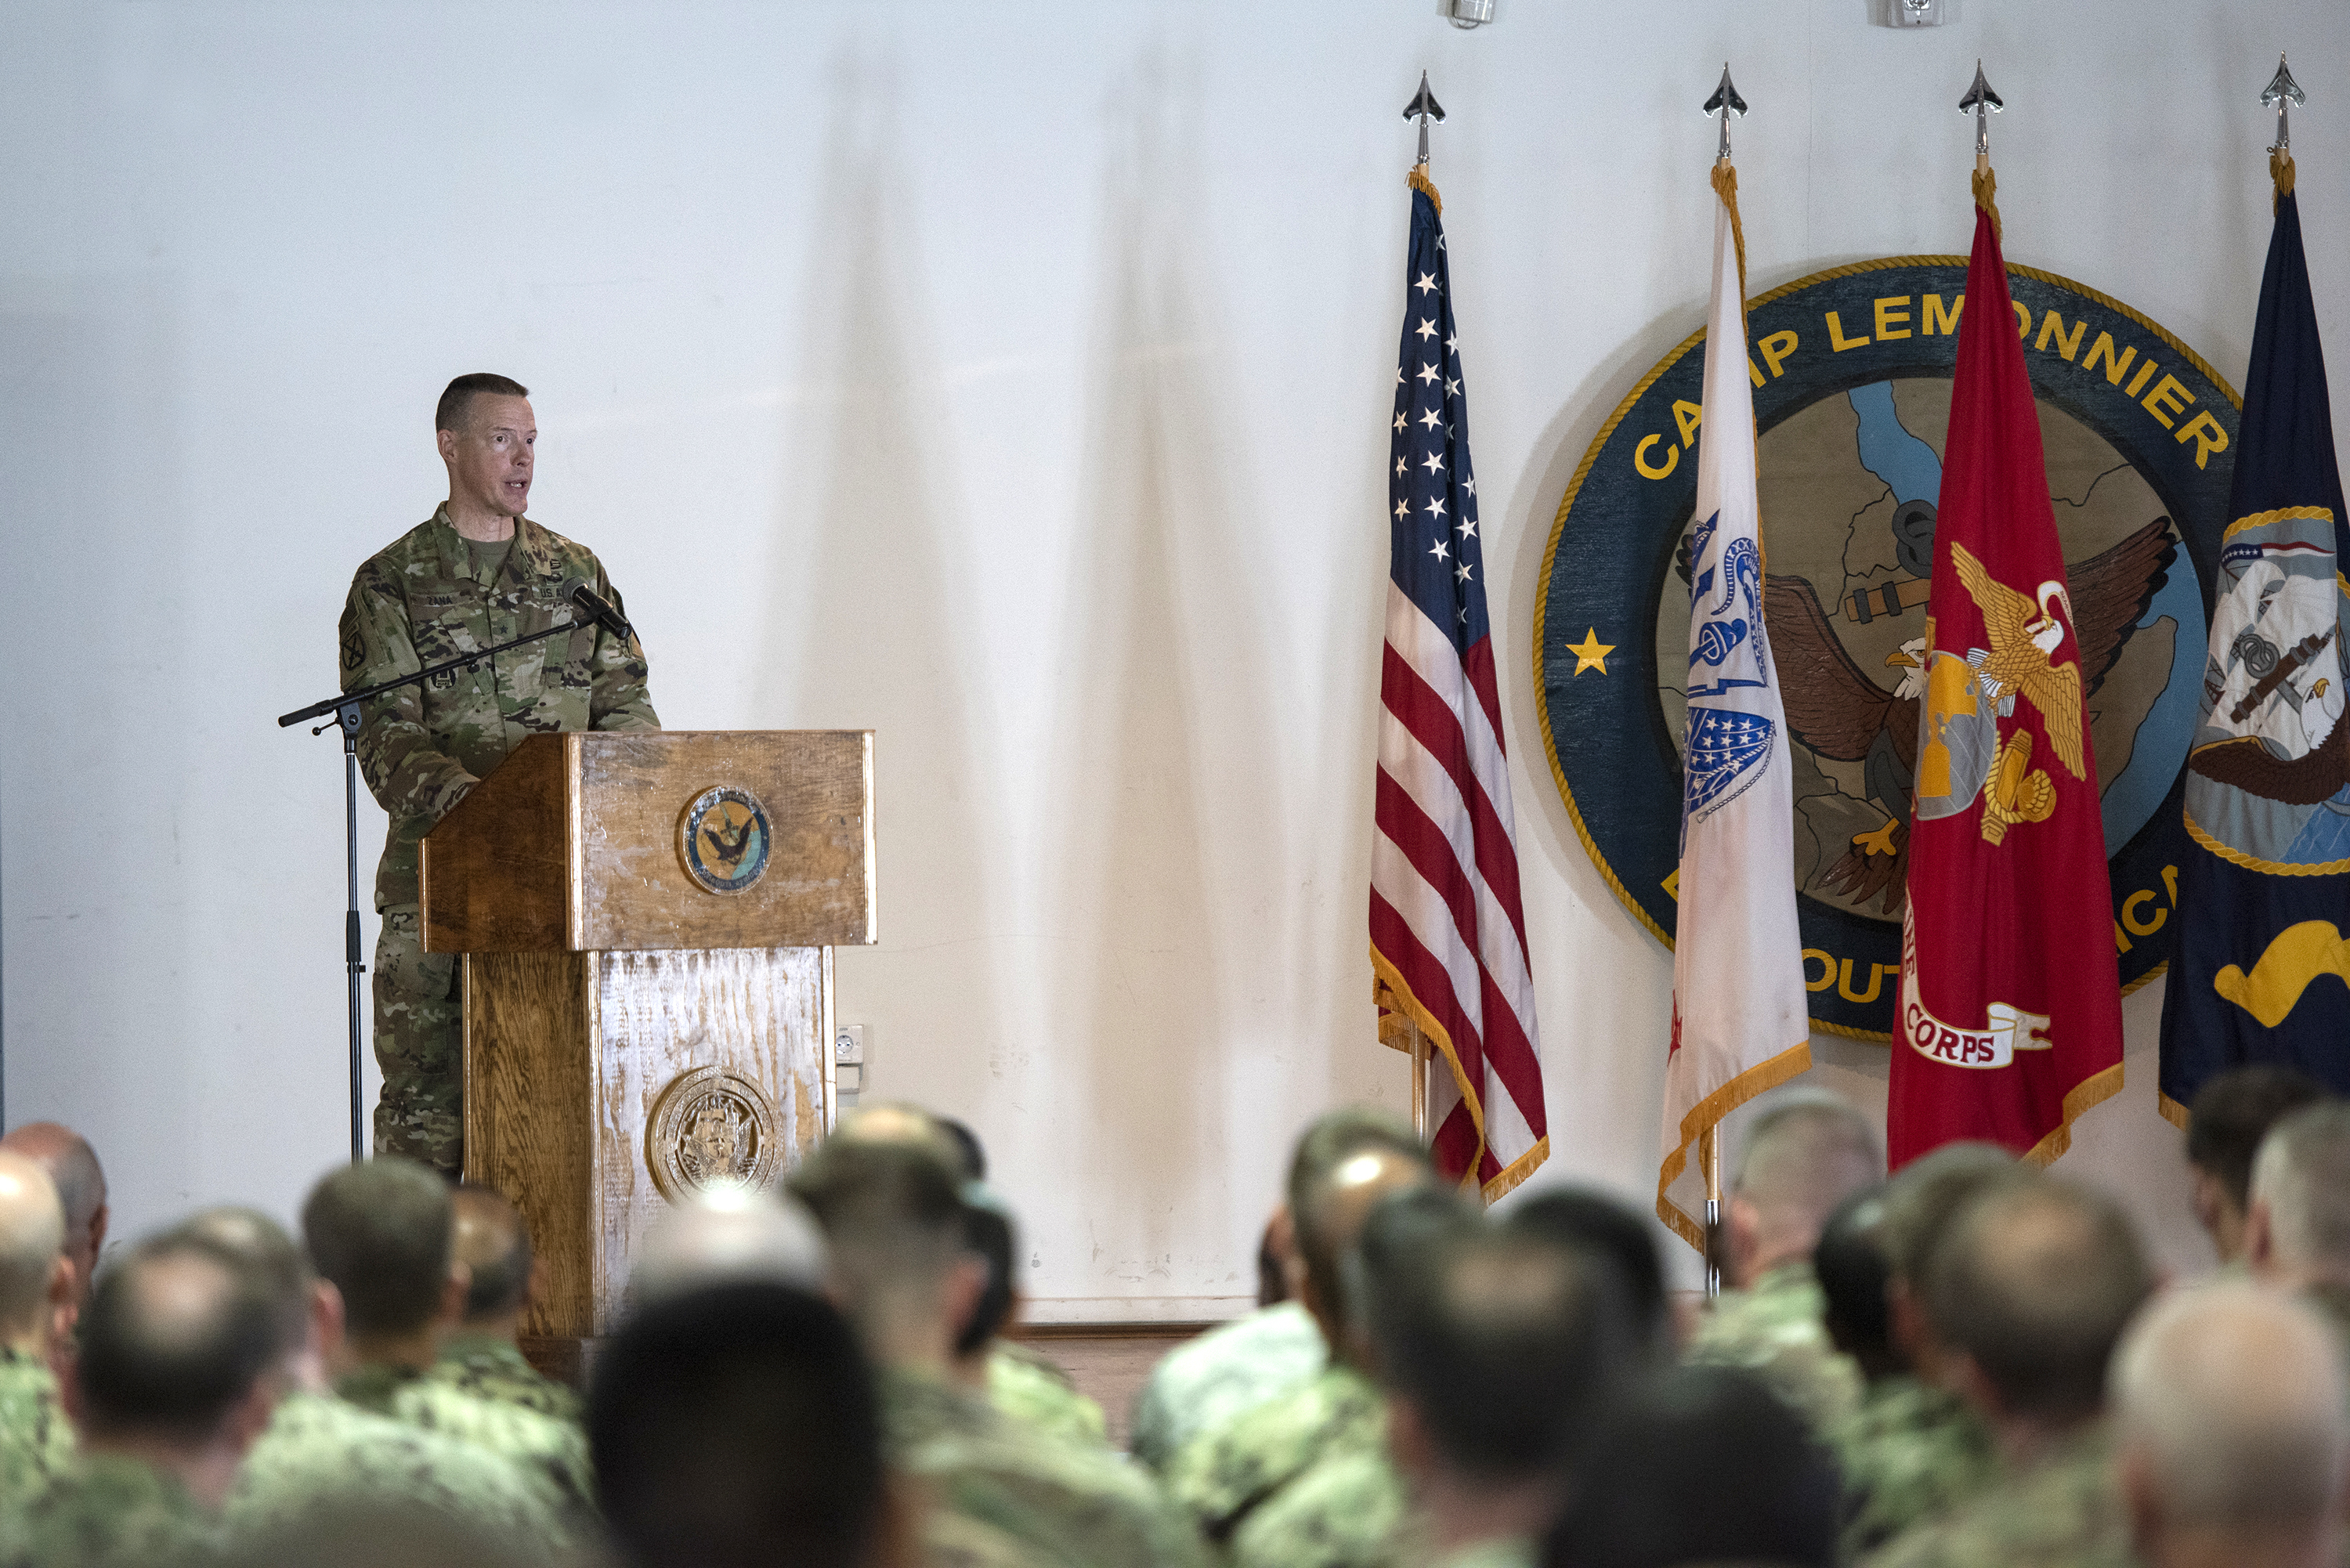 U.S. Army Brig. Gen. William Zana, acting commander, gives his welcome address to service members assigned to Combined Joint Task Force Horn of Africa on Camp Lemonnier, Djibouti, May 1, 2018. Zana served as the deputy commander of CJTF-HOA for the past year. (U.S. Air National Guard photo by Master Sgt. Sarah Mattison)